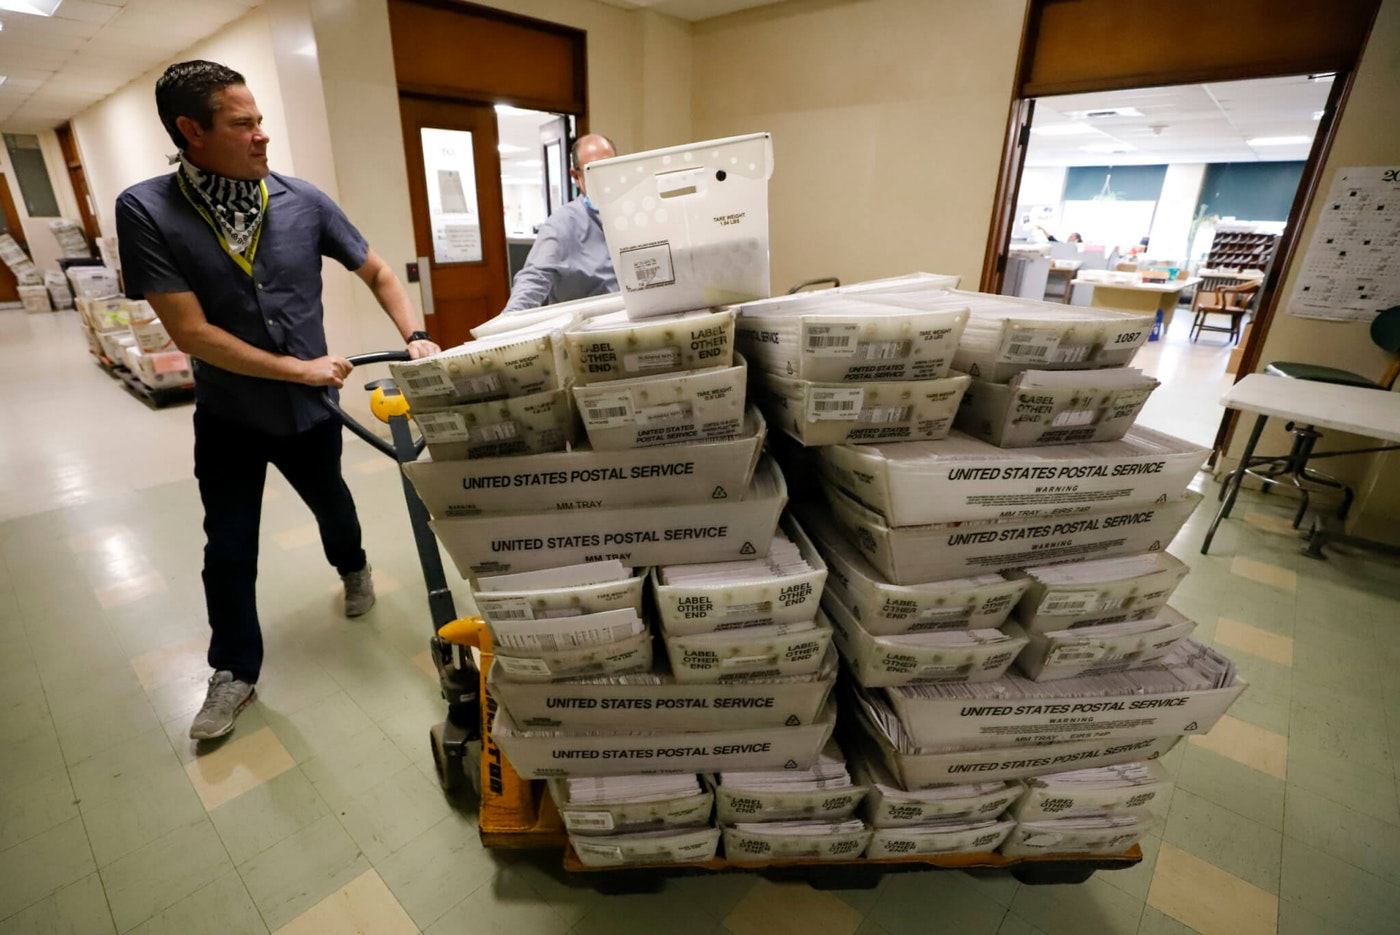 Chet Harhut, deputy manager, of the Allegheny County Division of Elections, wheels a dolly loaded with mail-in ballots, at the division of elections offices in downtown Pittsburgh Wednesday, May 27, 2020. The once-delayed Jun 2 Pennsylvania primary was a first run for some new paper-record voting systems and the inaugural use of newly legalized mail-in ballots. (AP Photo/Gene J. Puskar)